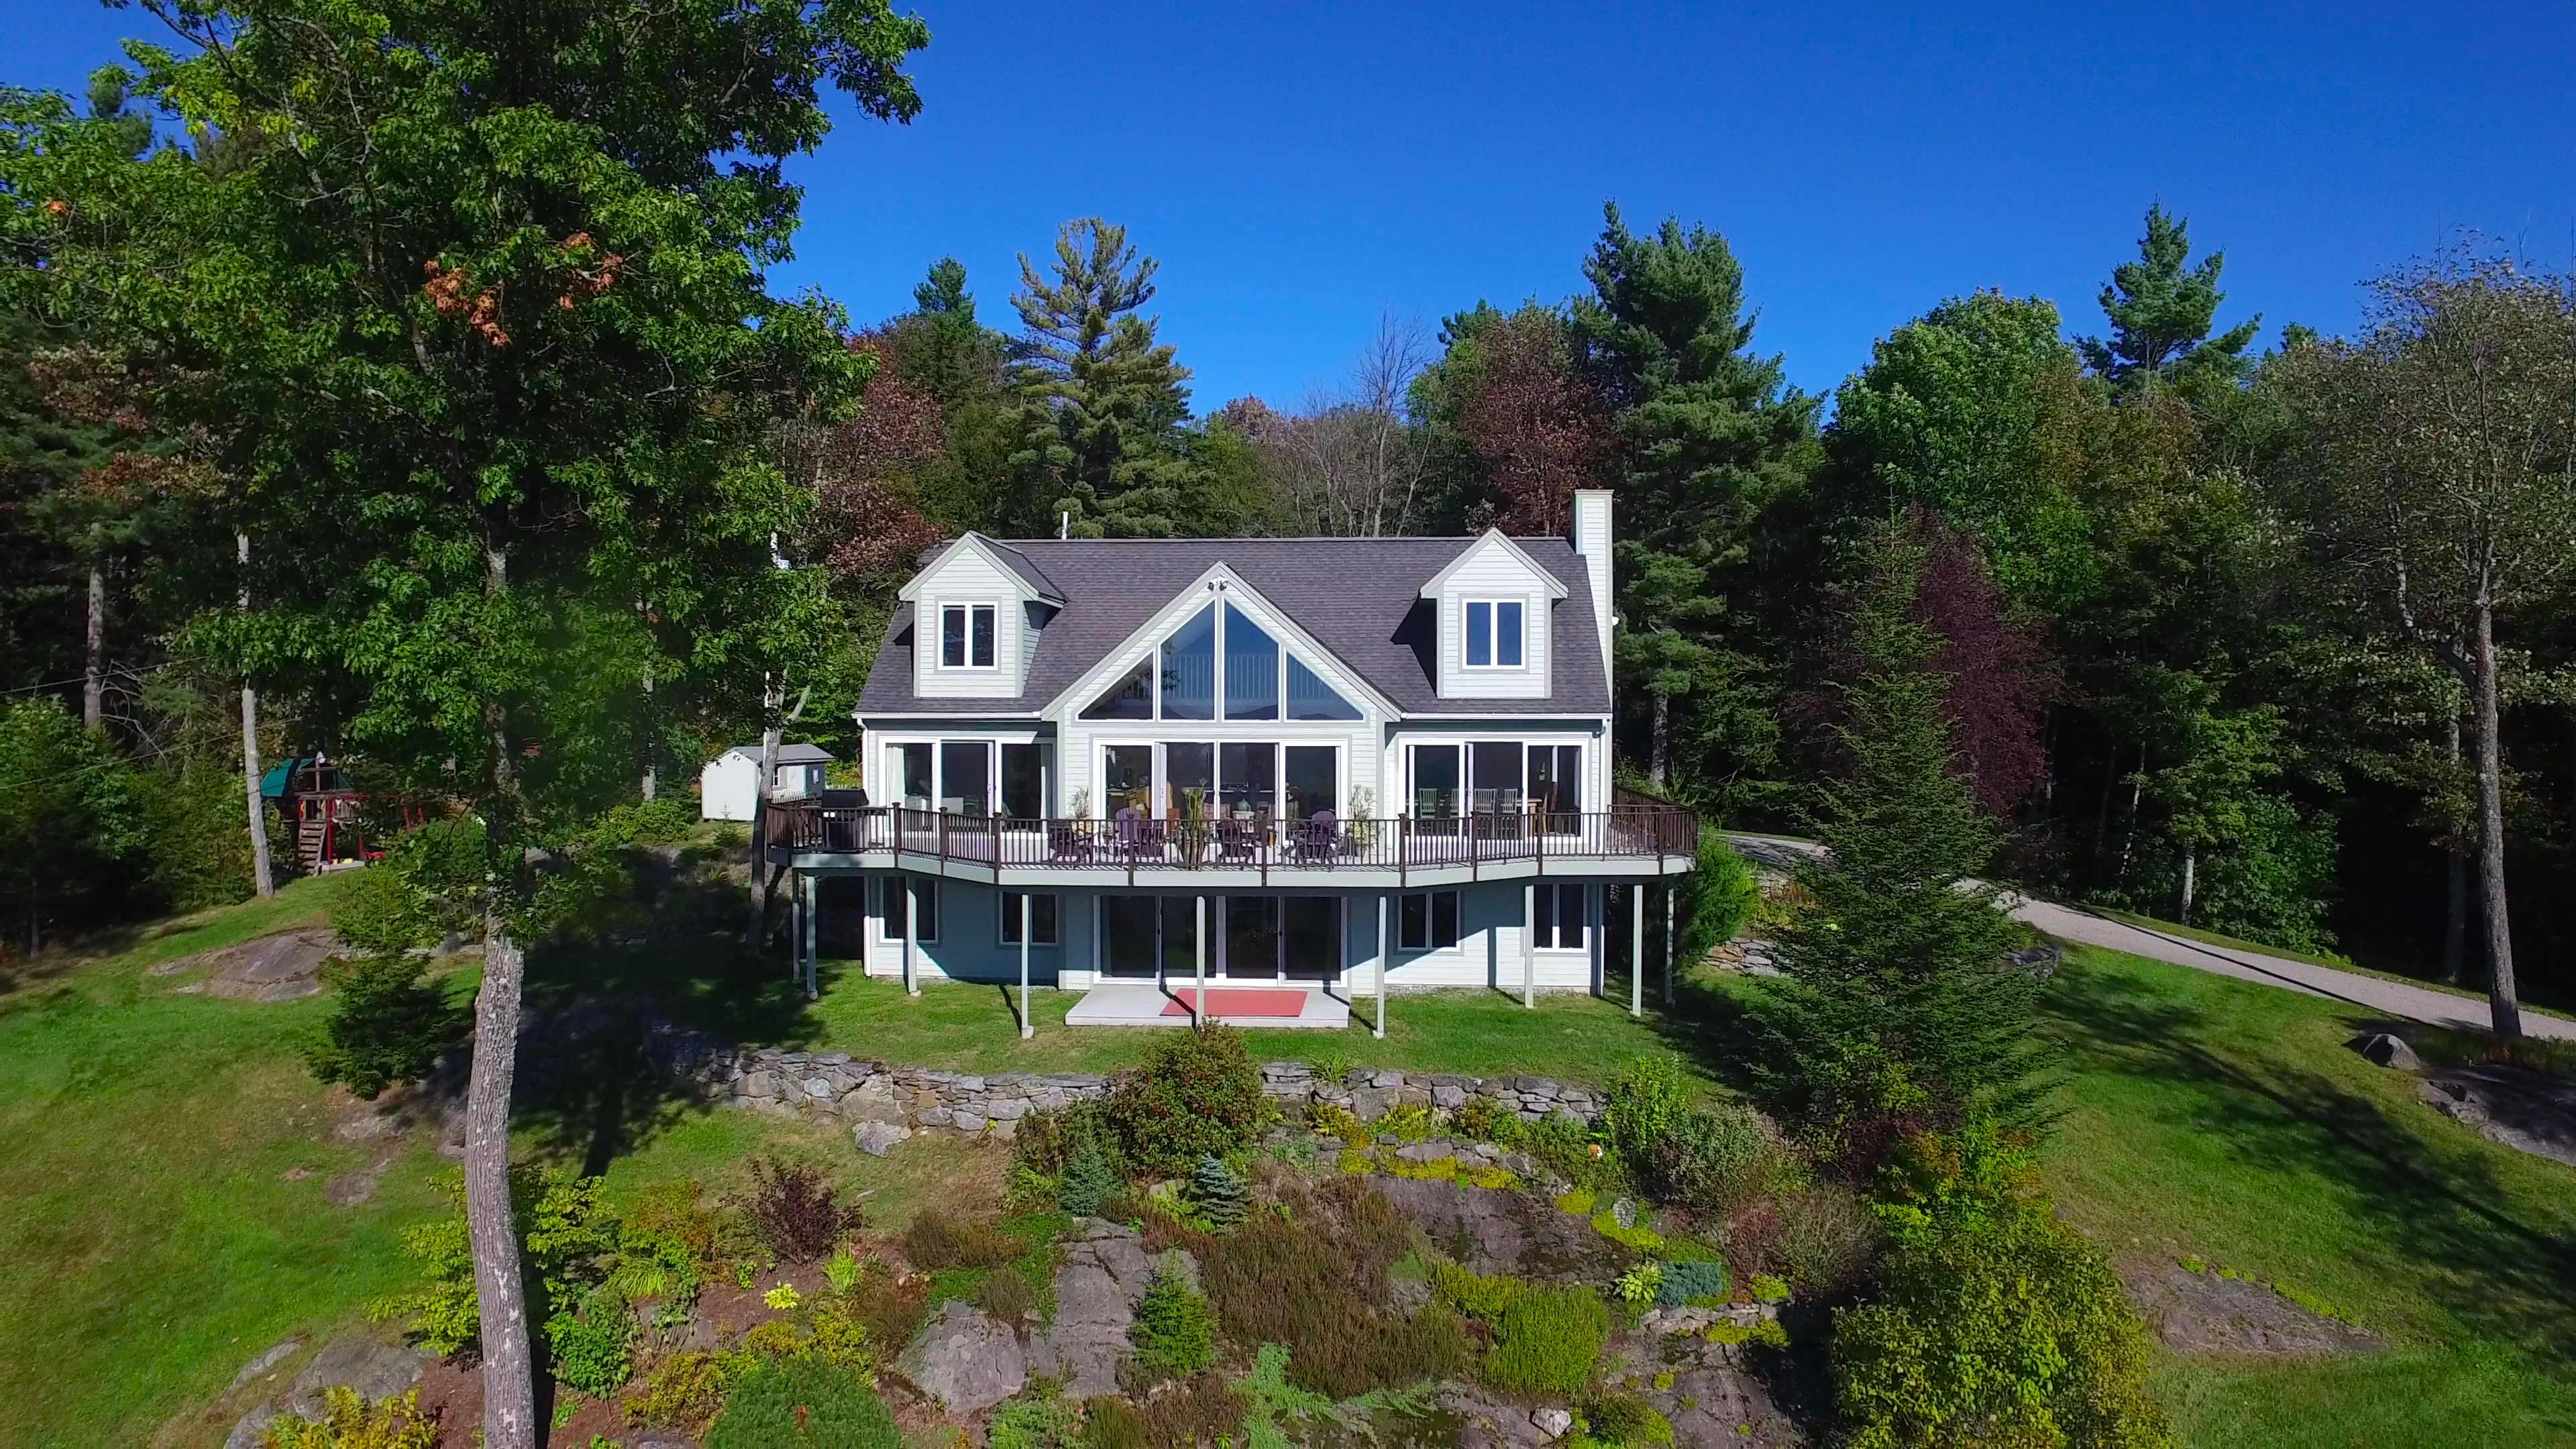 Single Family Home for Sale at 110&145 Pellerin Hill Road, Springfield 110&145 Pellerin Hill Rd Springfield, New Hampshire, 03284 United States